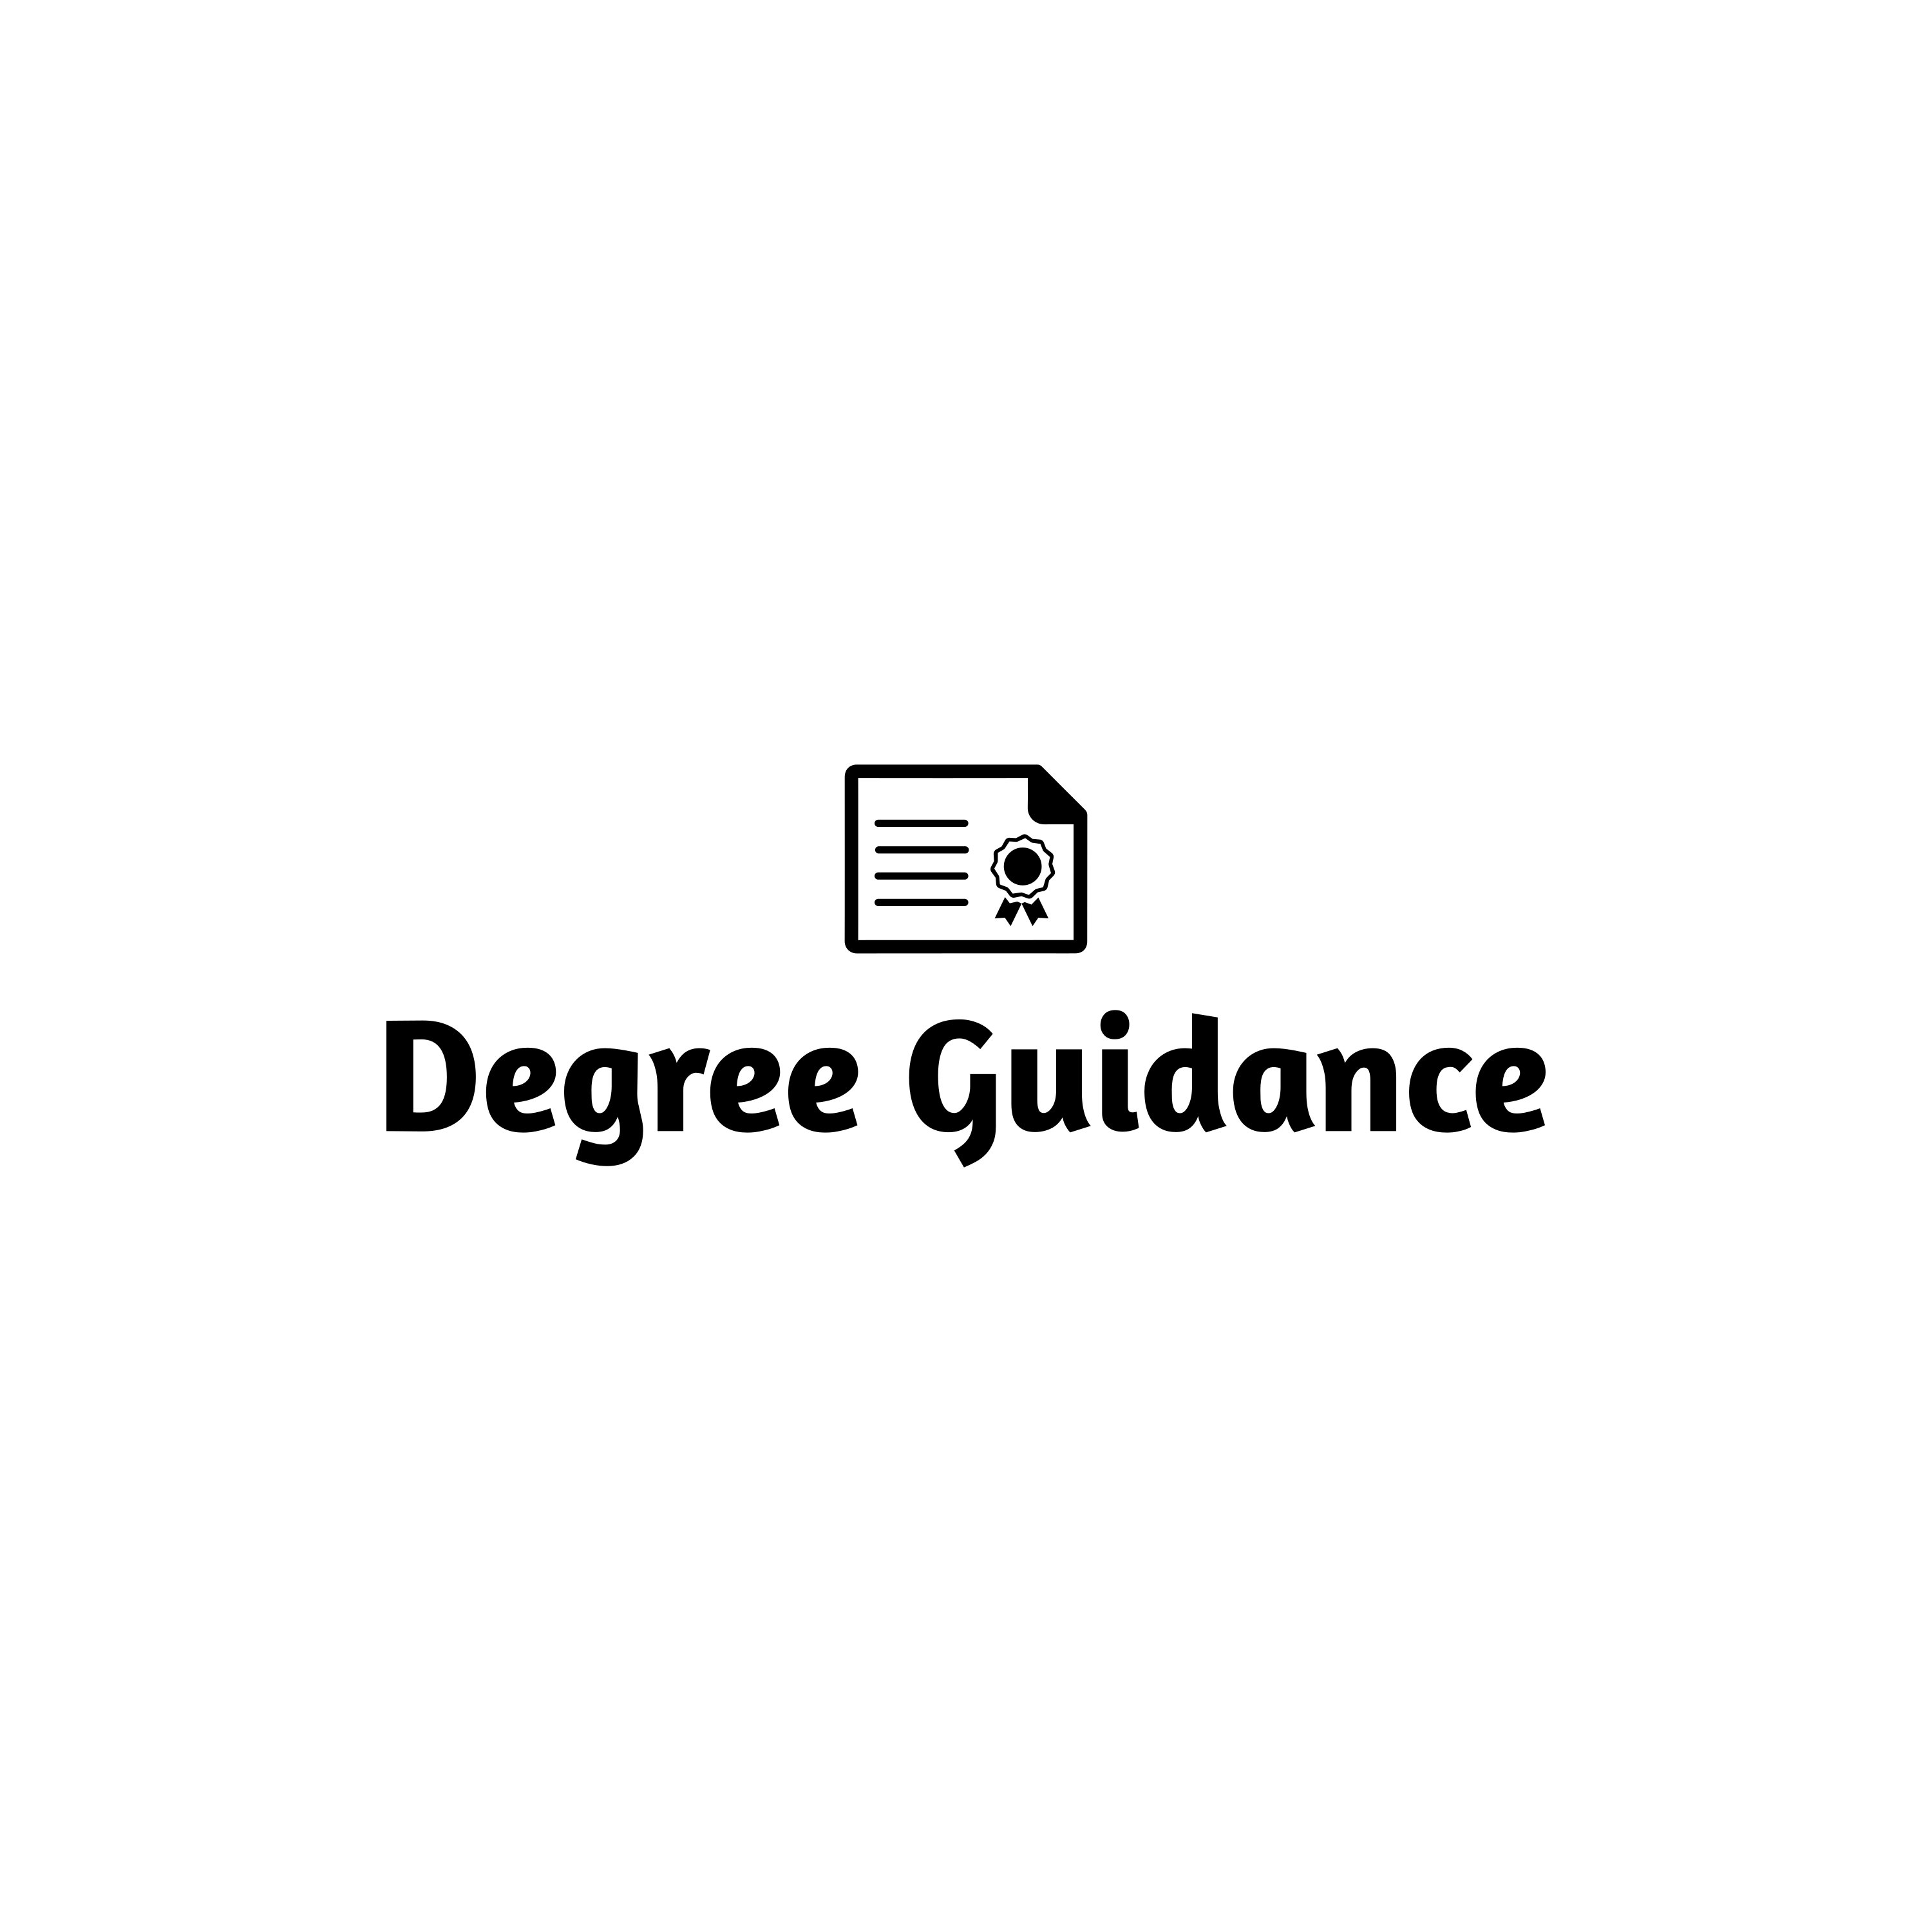 Degree Guidance